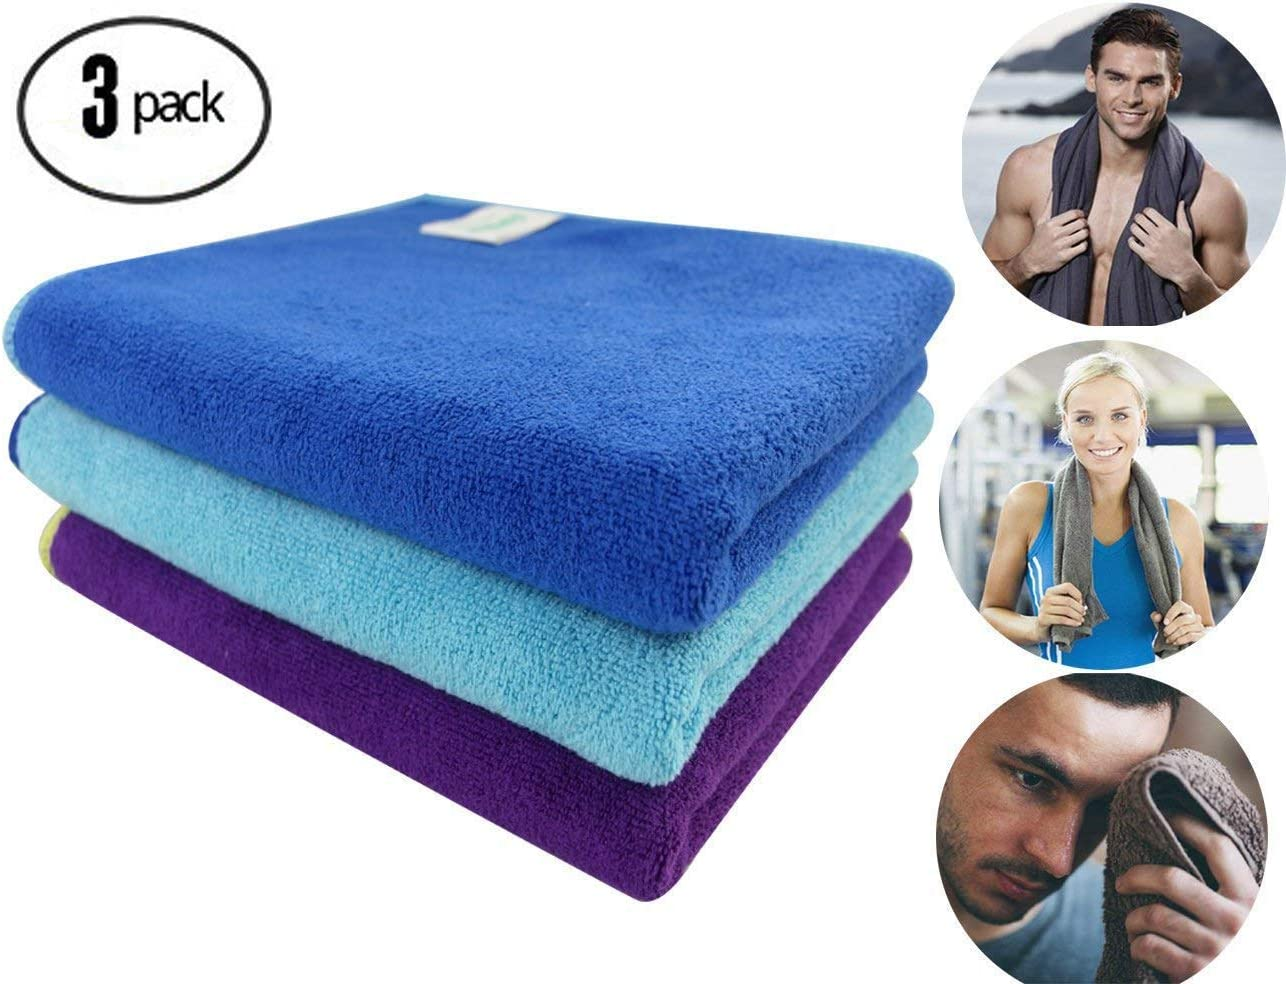 Workout Towels Sports Towel Microfiber Sweat Towels Set, Multi-Purpose Gym Towel, Fast Drying & Super Soft, for Sports, Fitness, Gym, Yoga, Travel, Camping & More 3 Pack